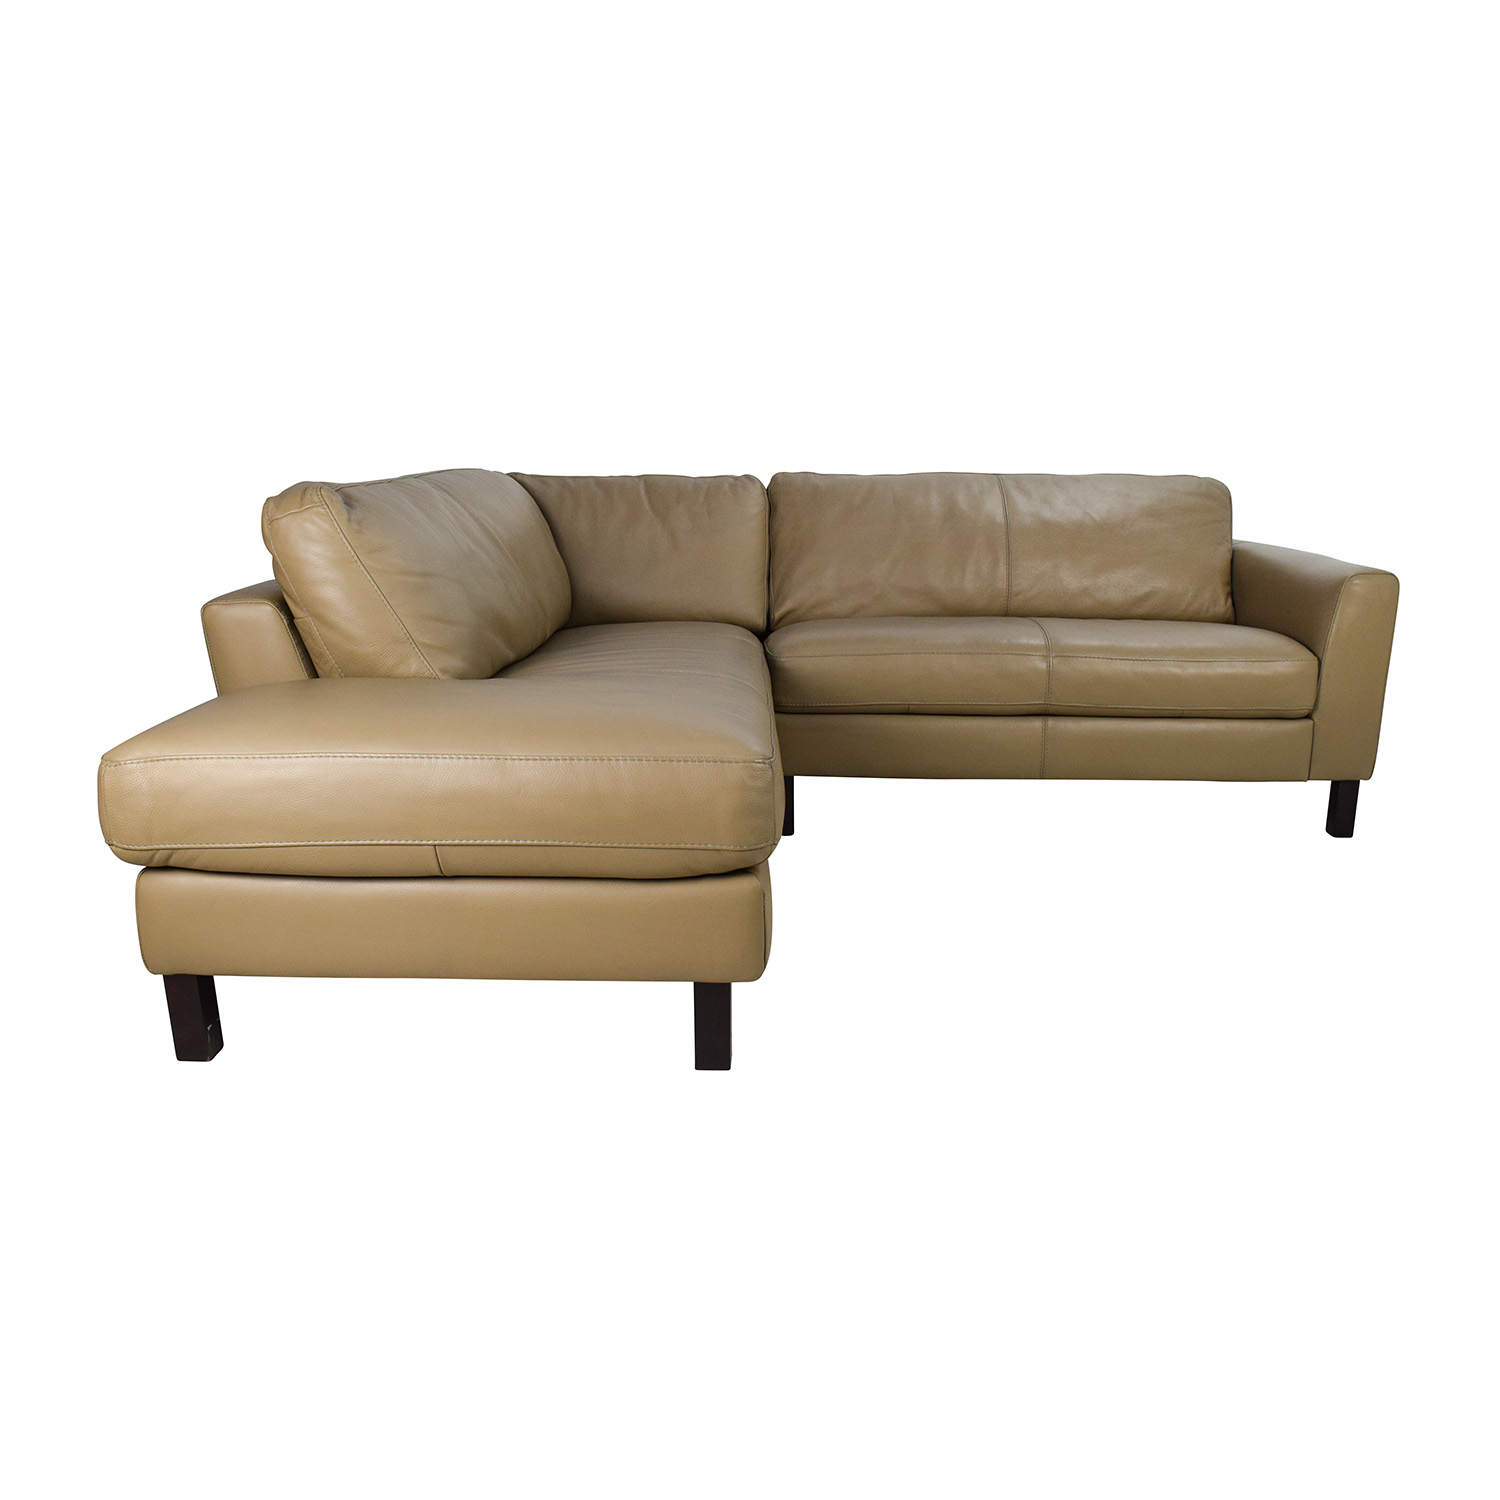 Used Sectional Sofas Used Sectional Sofas Used Sectional Sofa Hotelsbacau